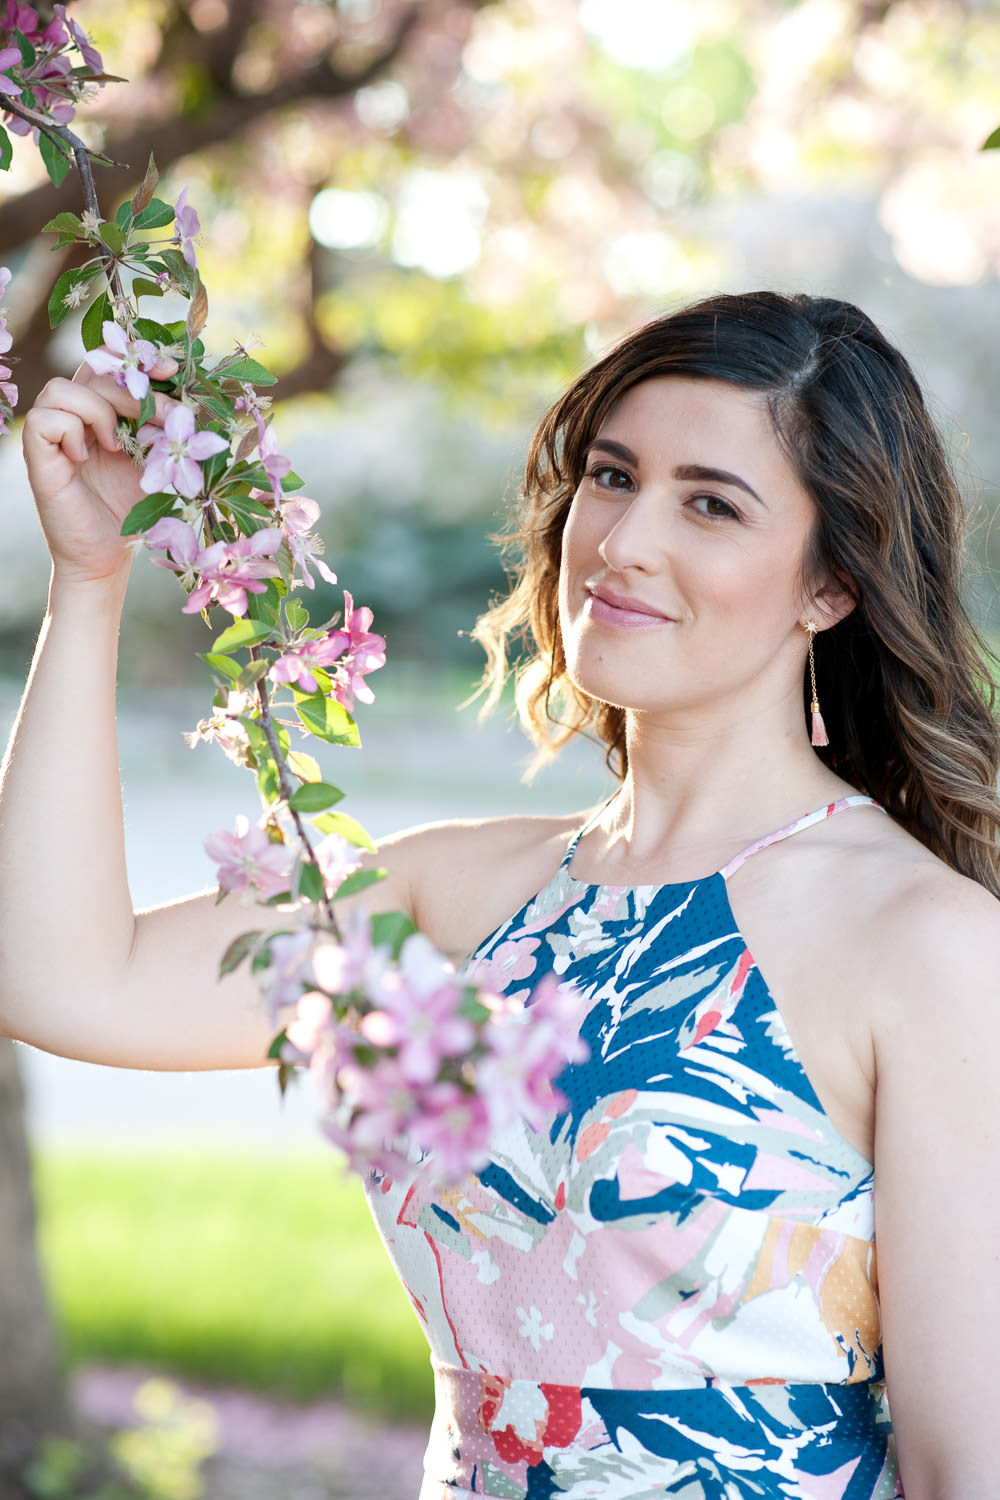 Janelle during cherry blossom season captured by Calgary lifestyle photographer Tara Whittaker